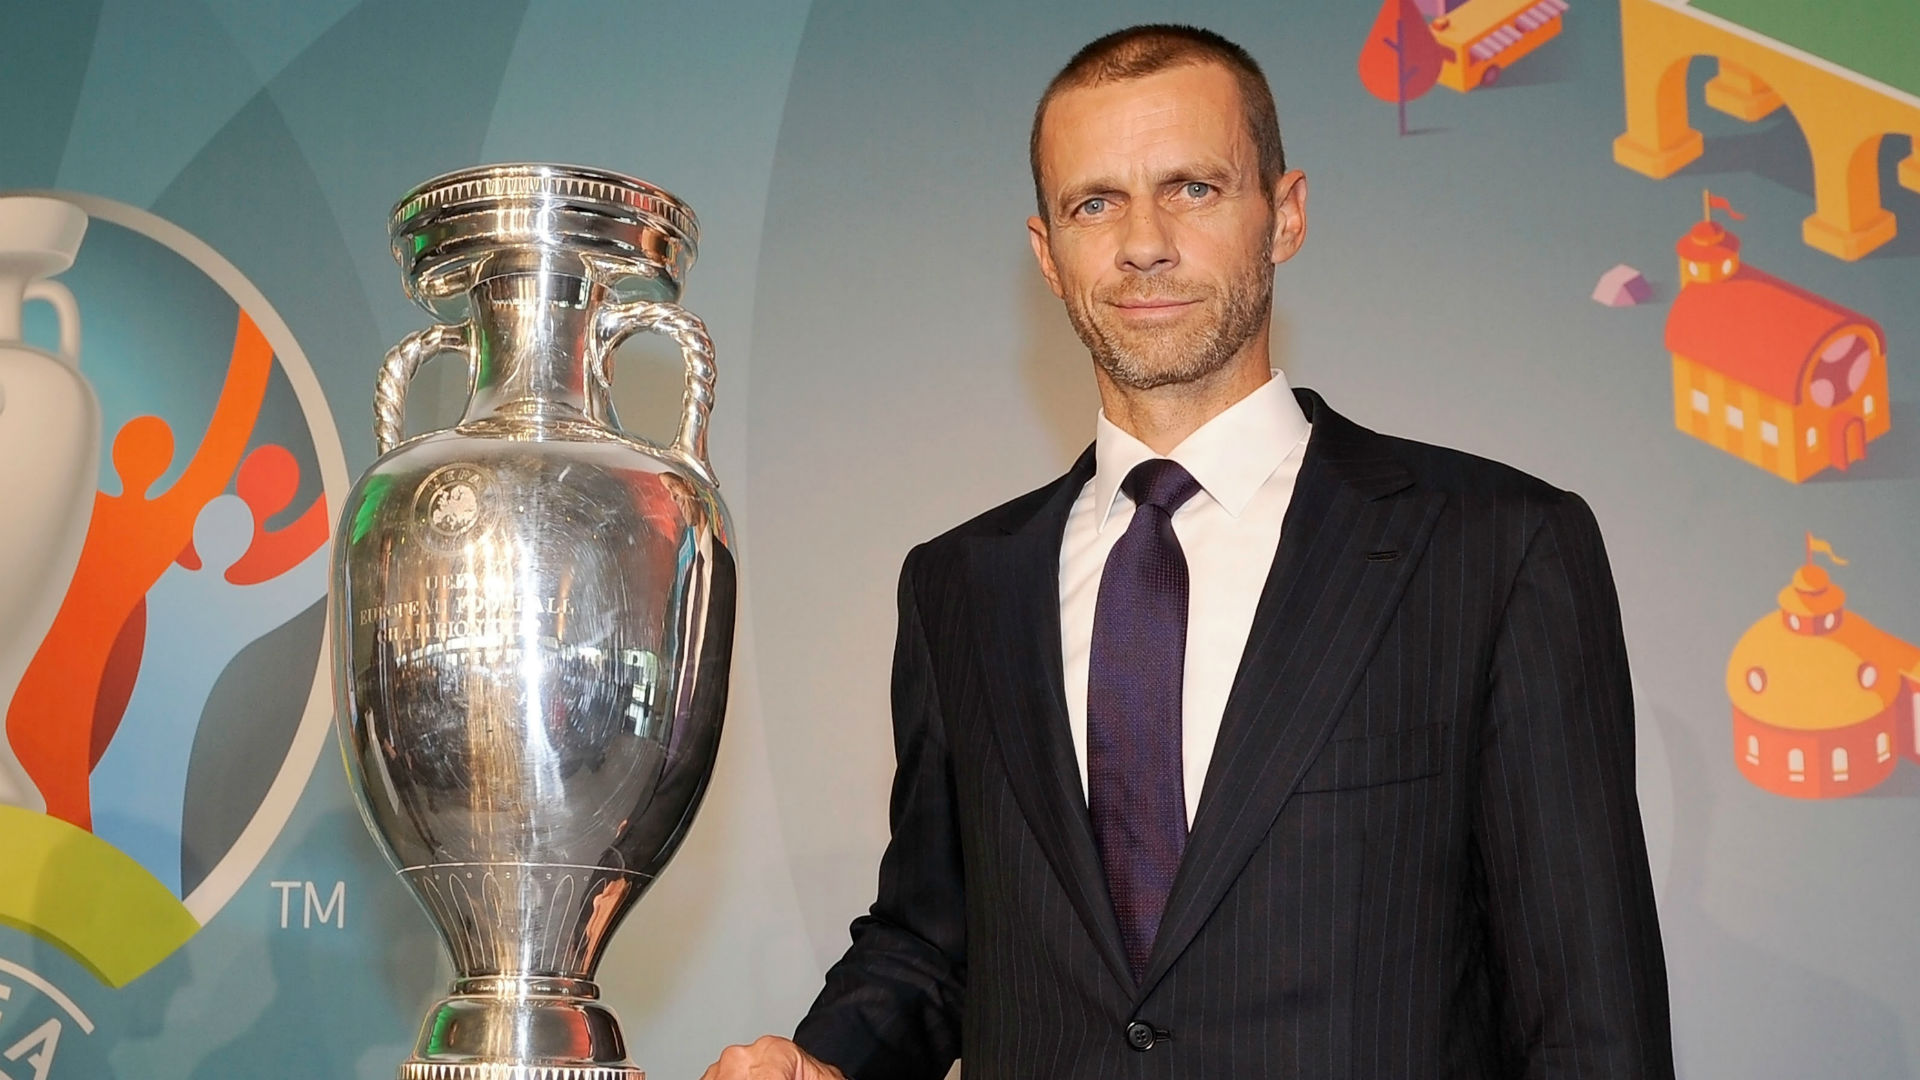 Ceferin nominated for second term as UEFA president